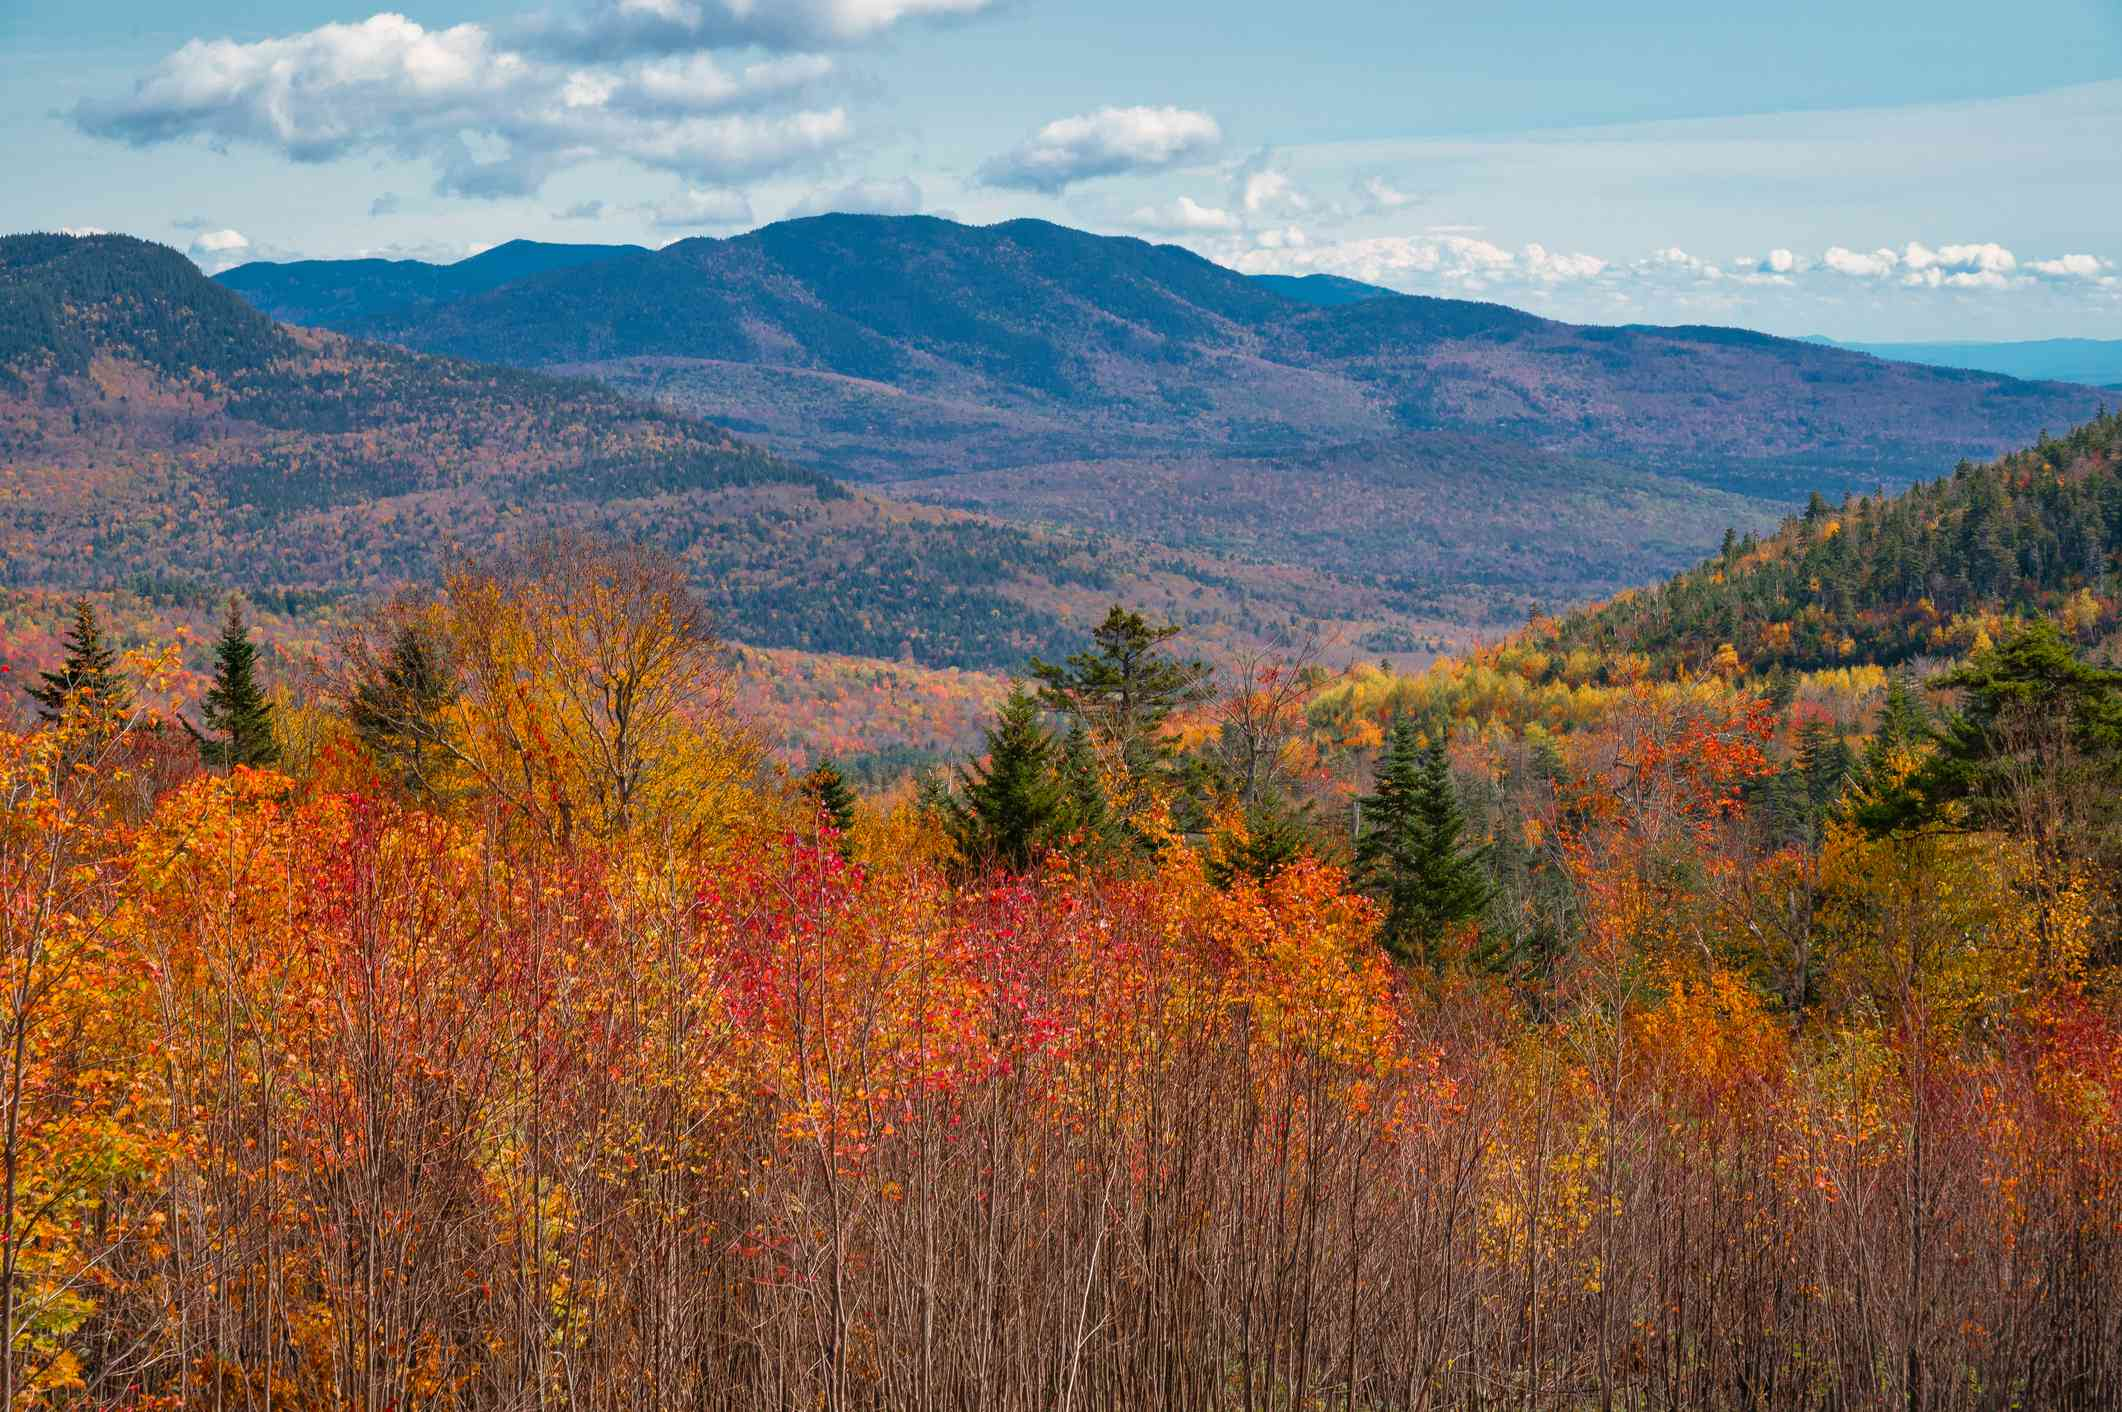 A lush forest of colorful trees in shades of red, gold, orange, and green along the Kancamagus Scenic Byway with the White Mountains in the distance under a blue sky with white clouds